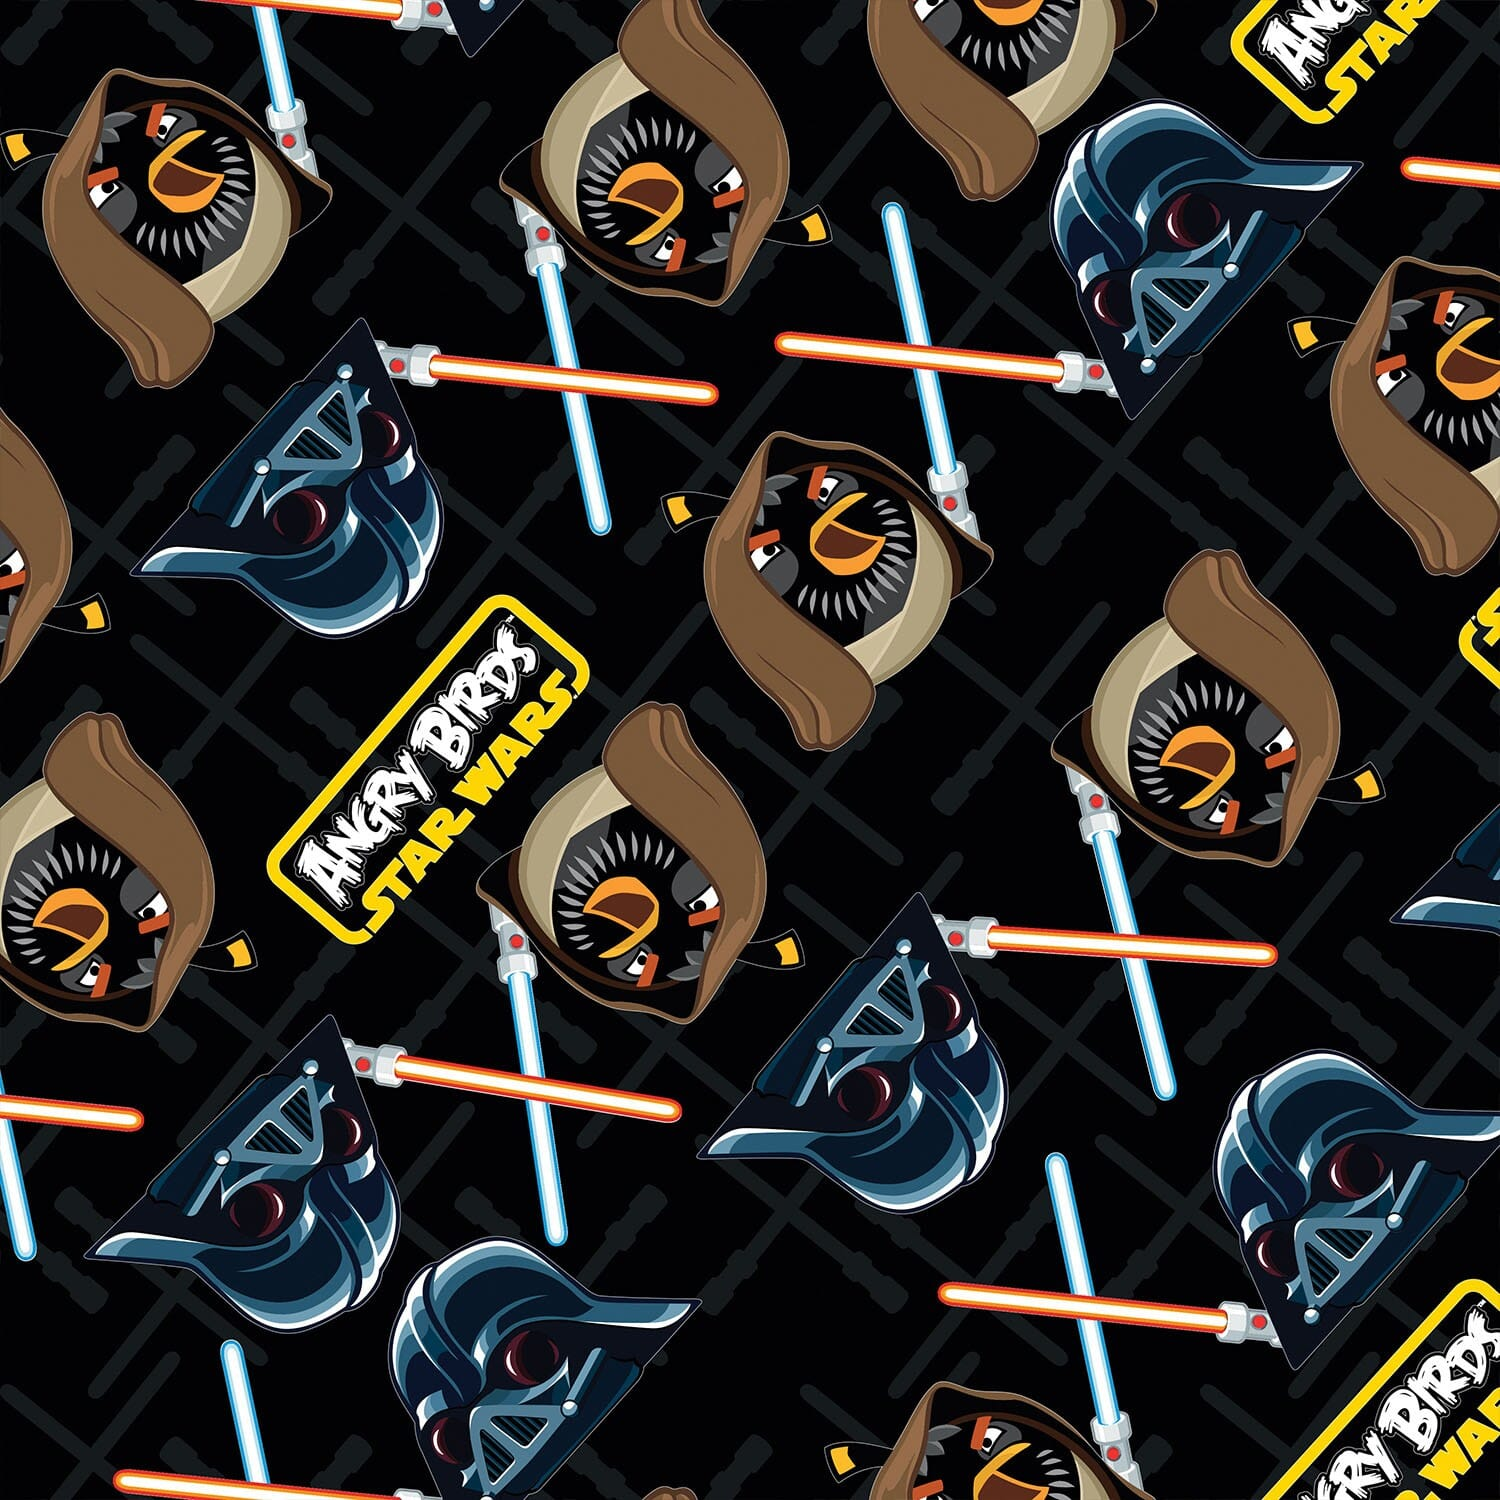 Patchwork Fabric Childrens Angry Birds Star Wars Fabric Black Duel